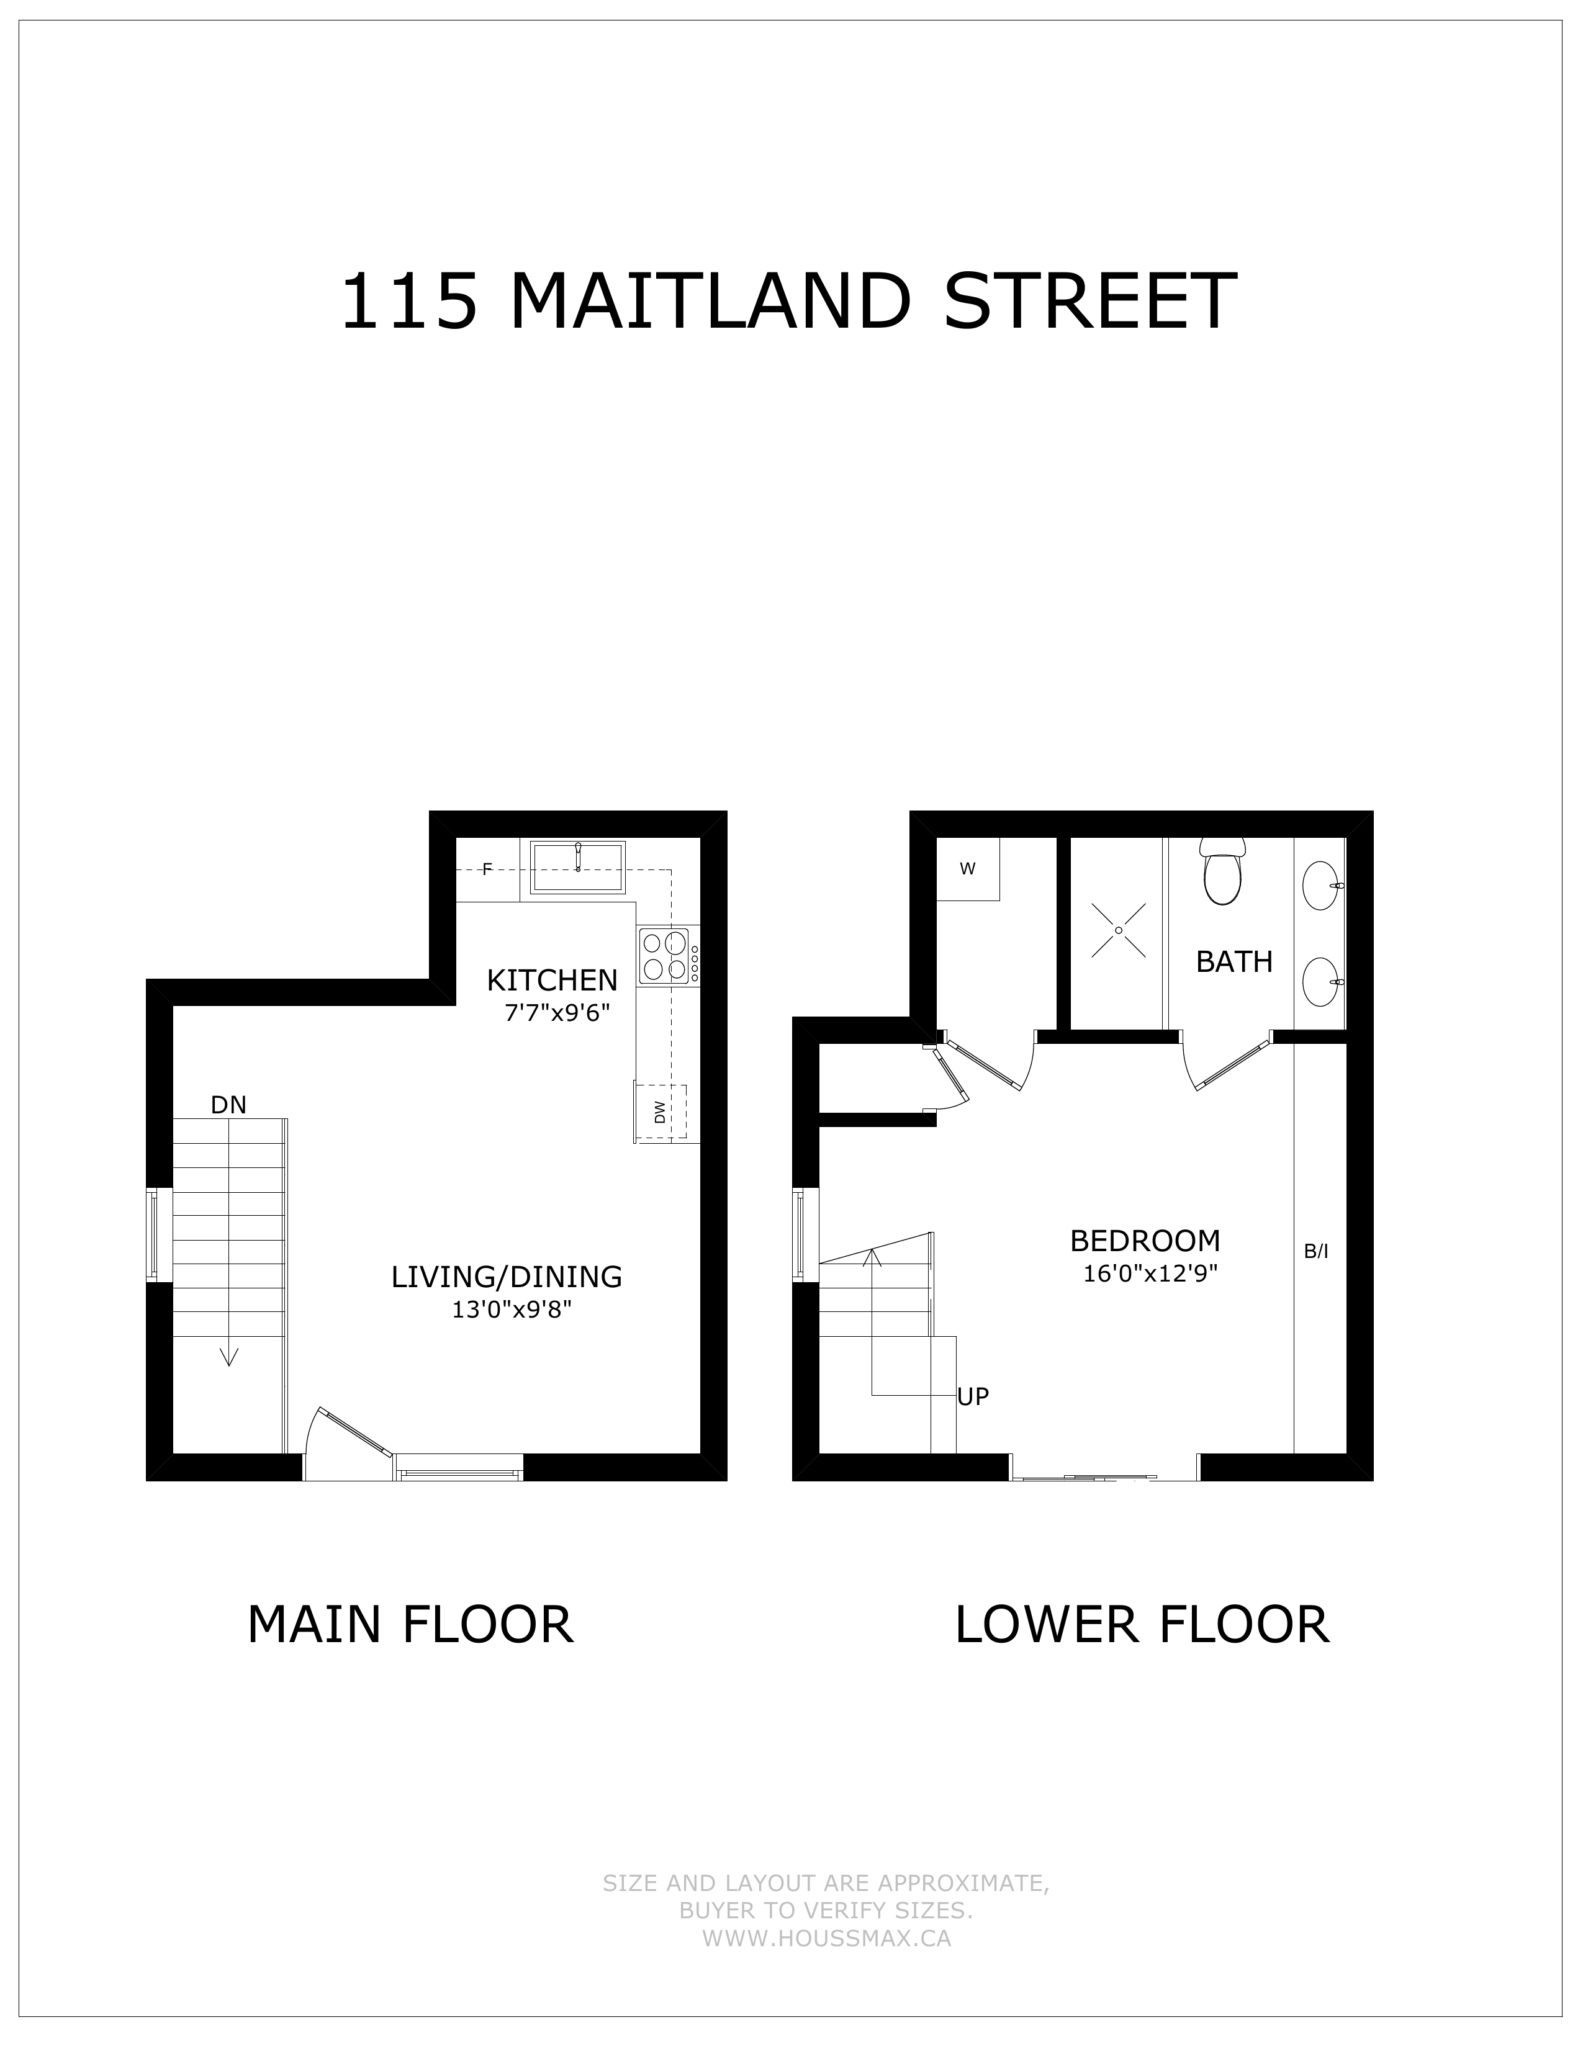 Floor plans for 115 Maitland Street